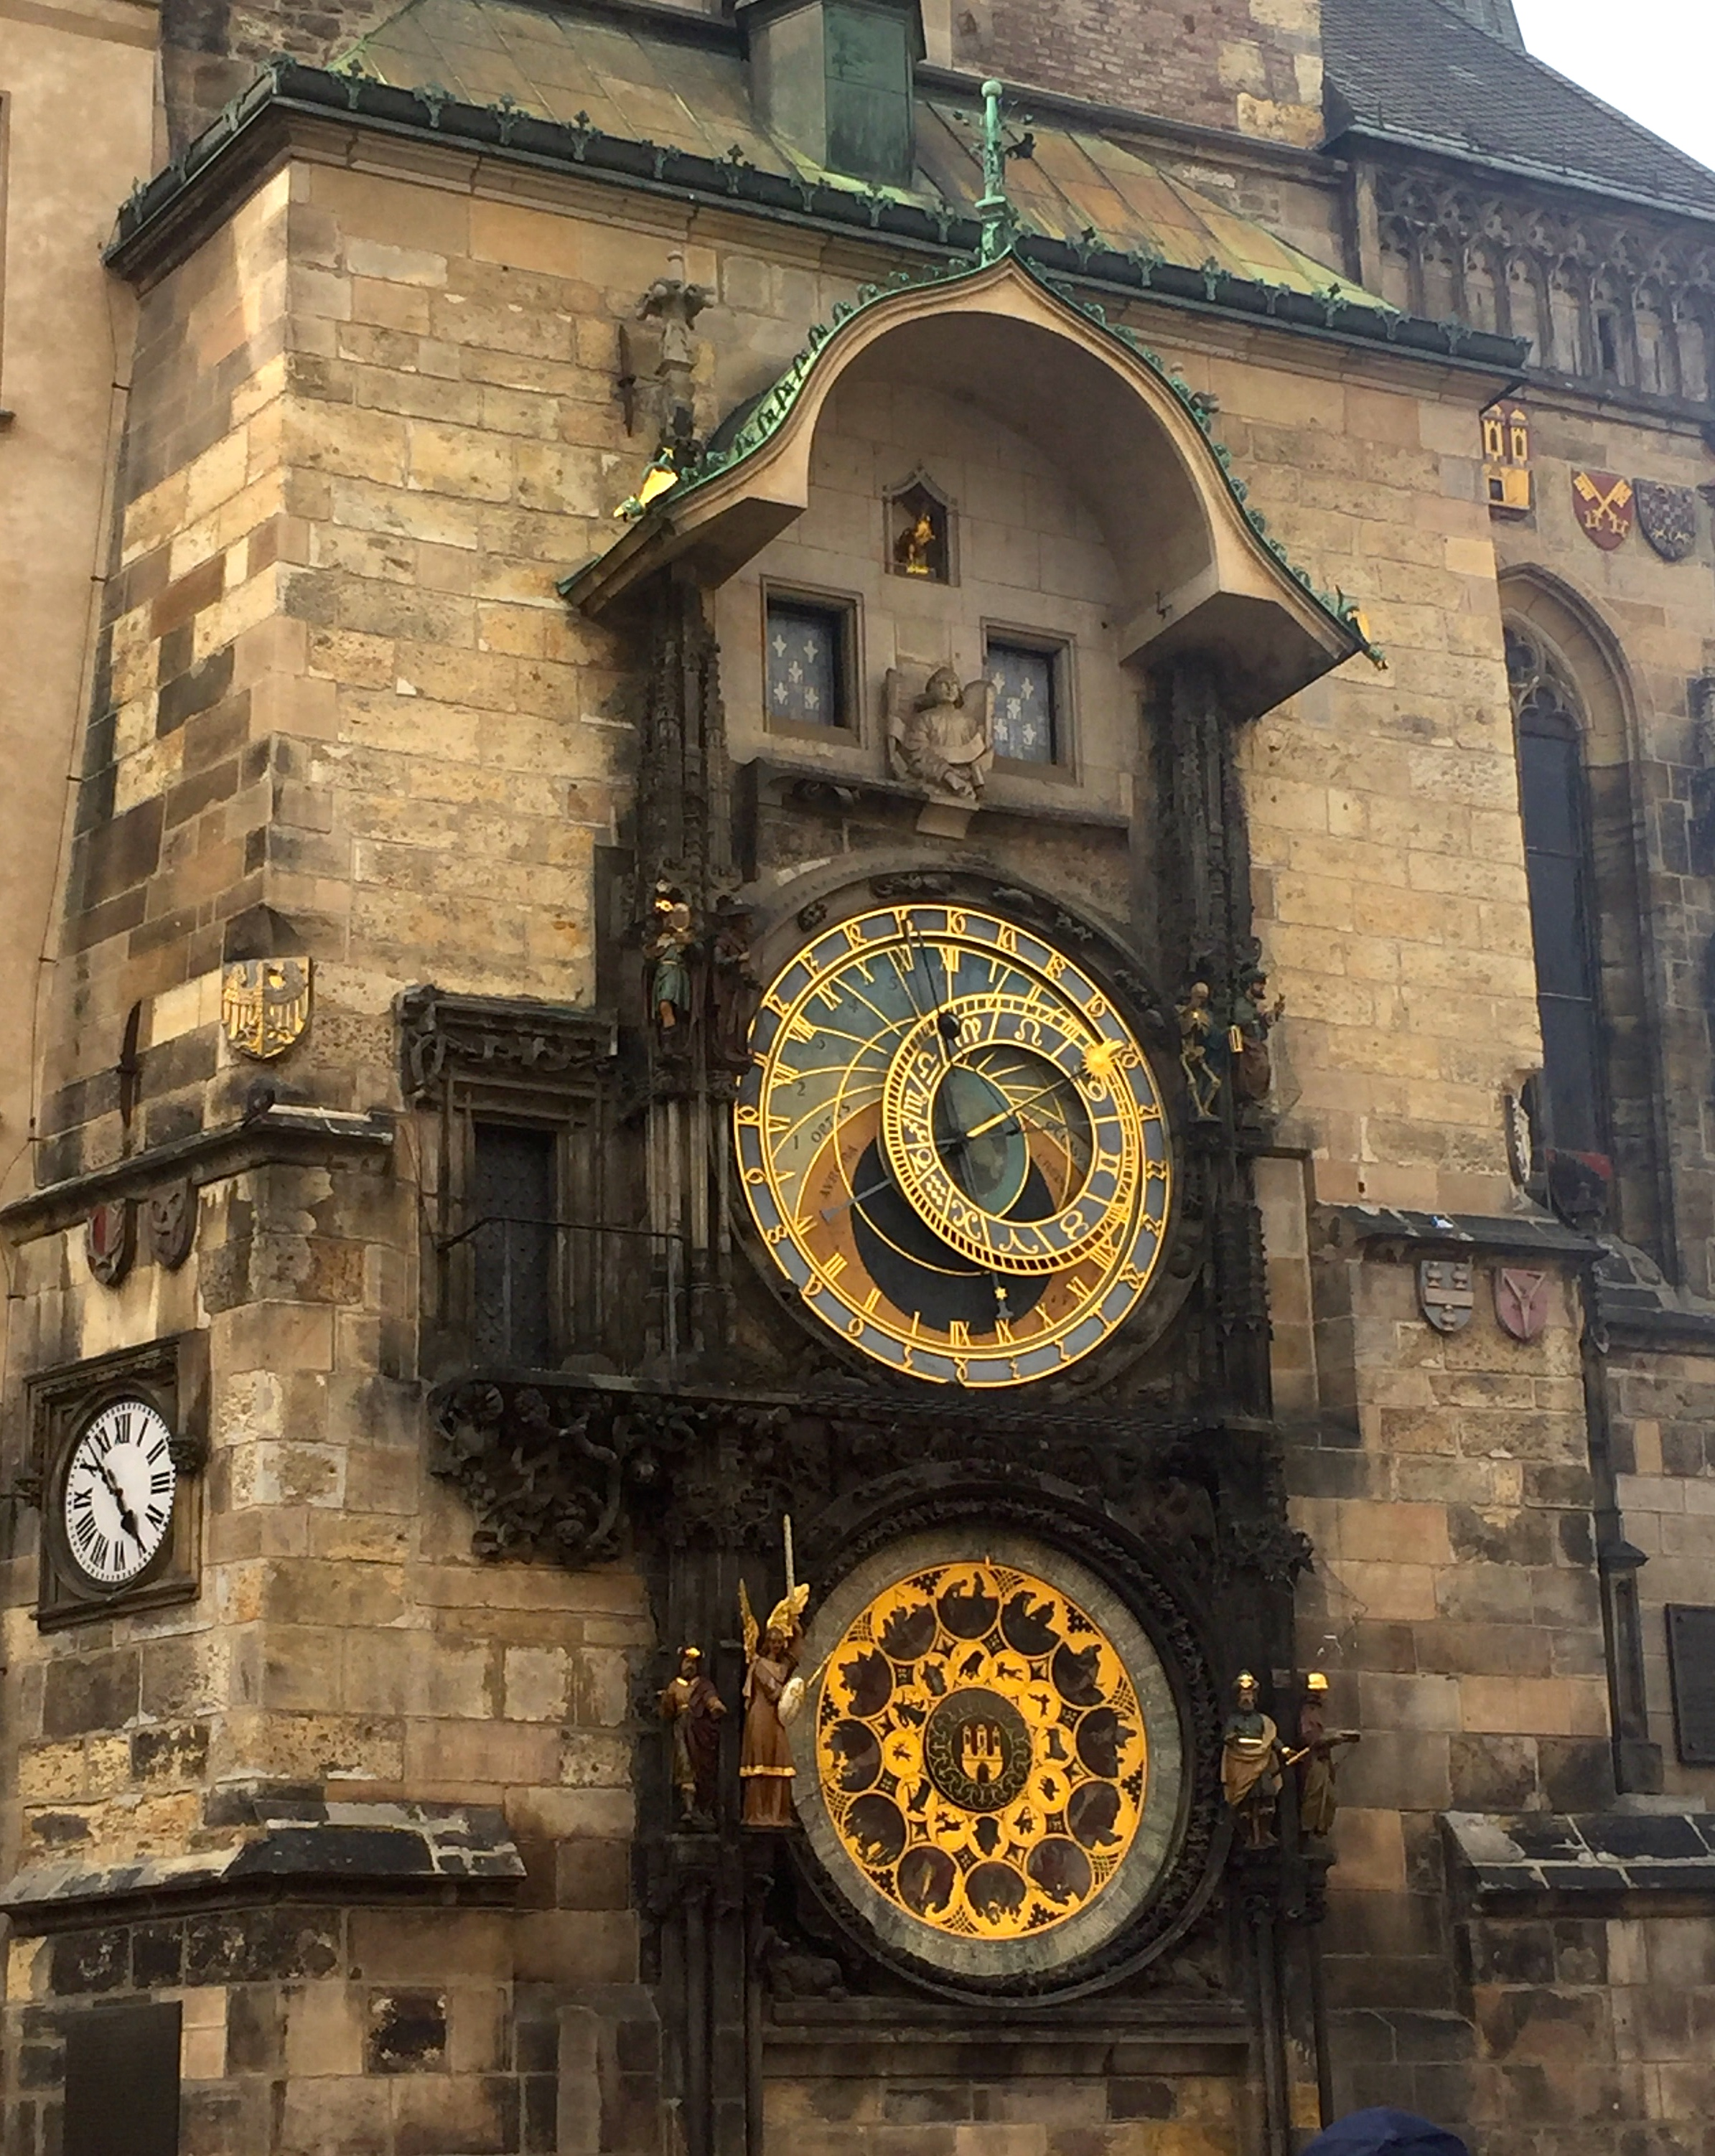 astrological-clock-prague-attractions